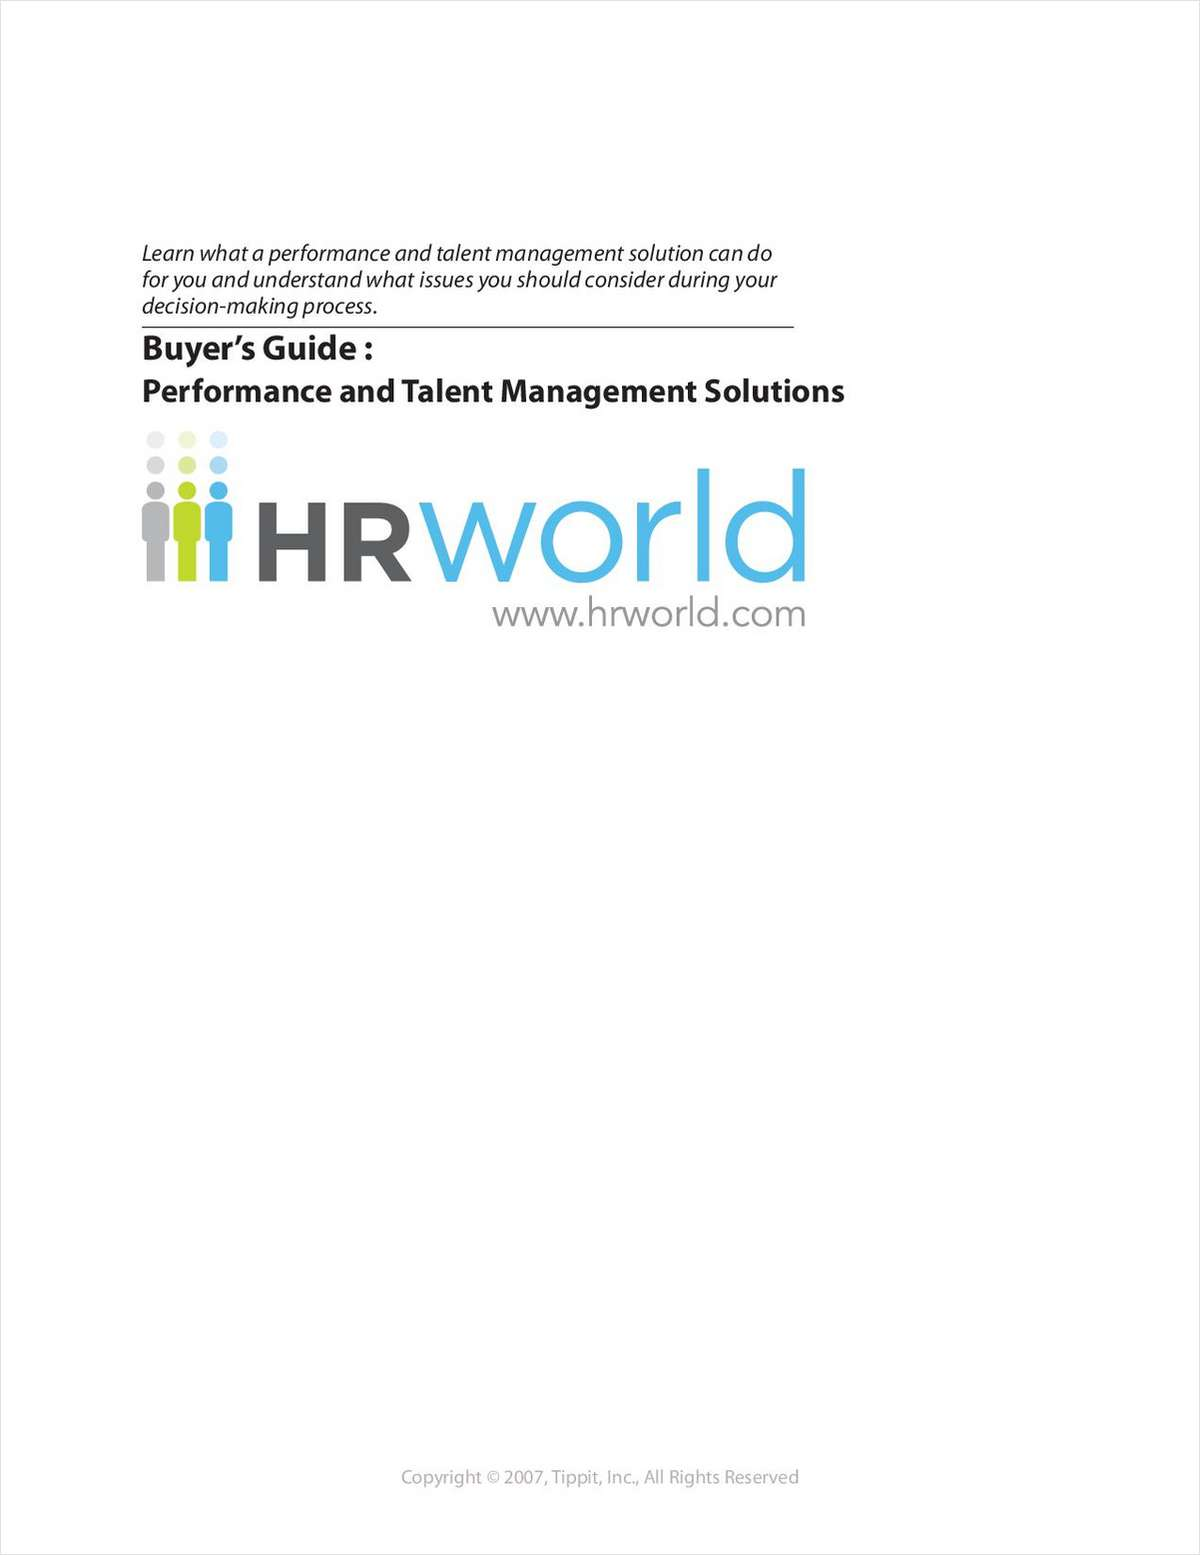 Performance and Talent Management Solutions Buyer's Guide